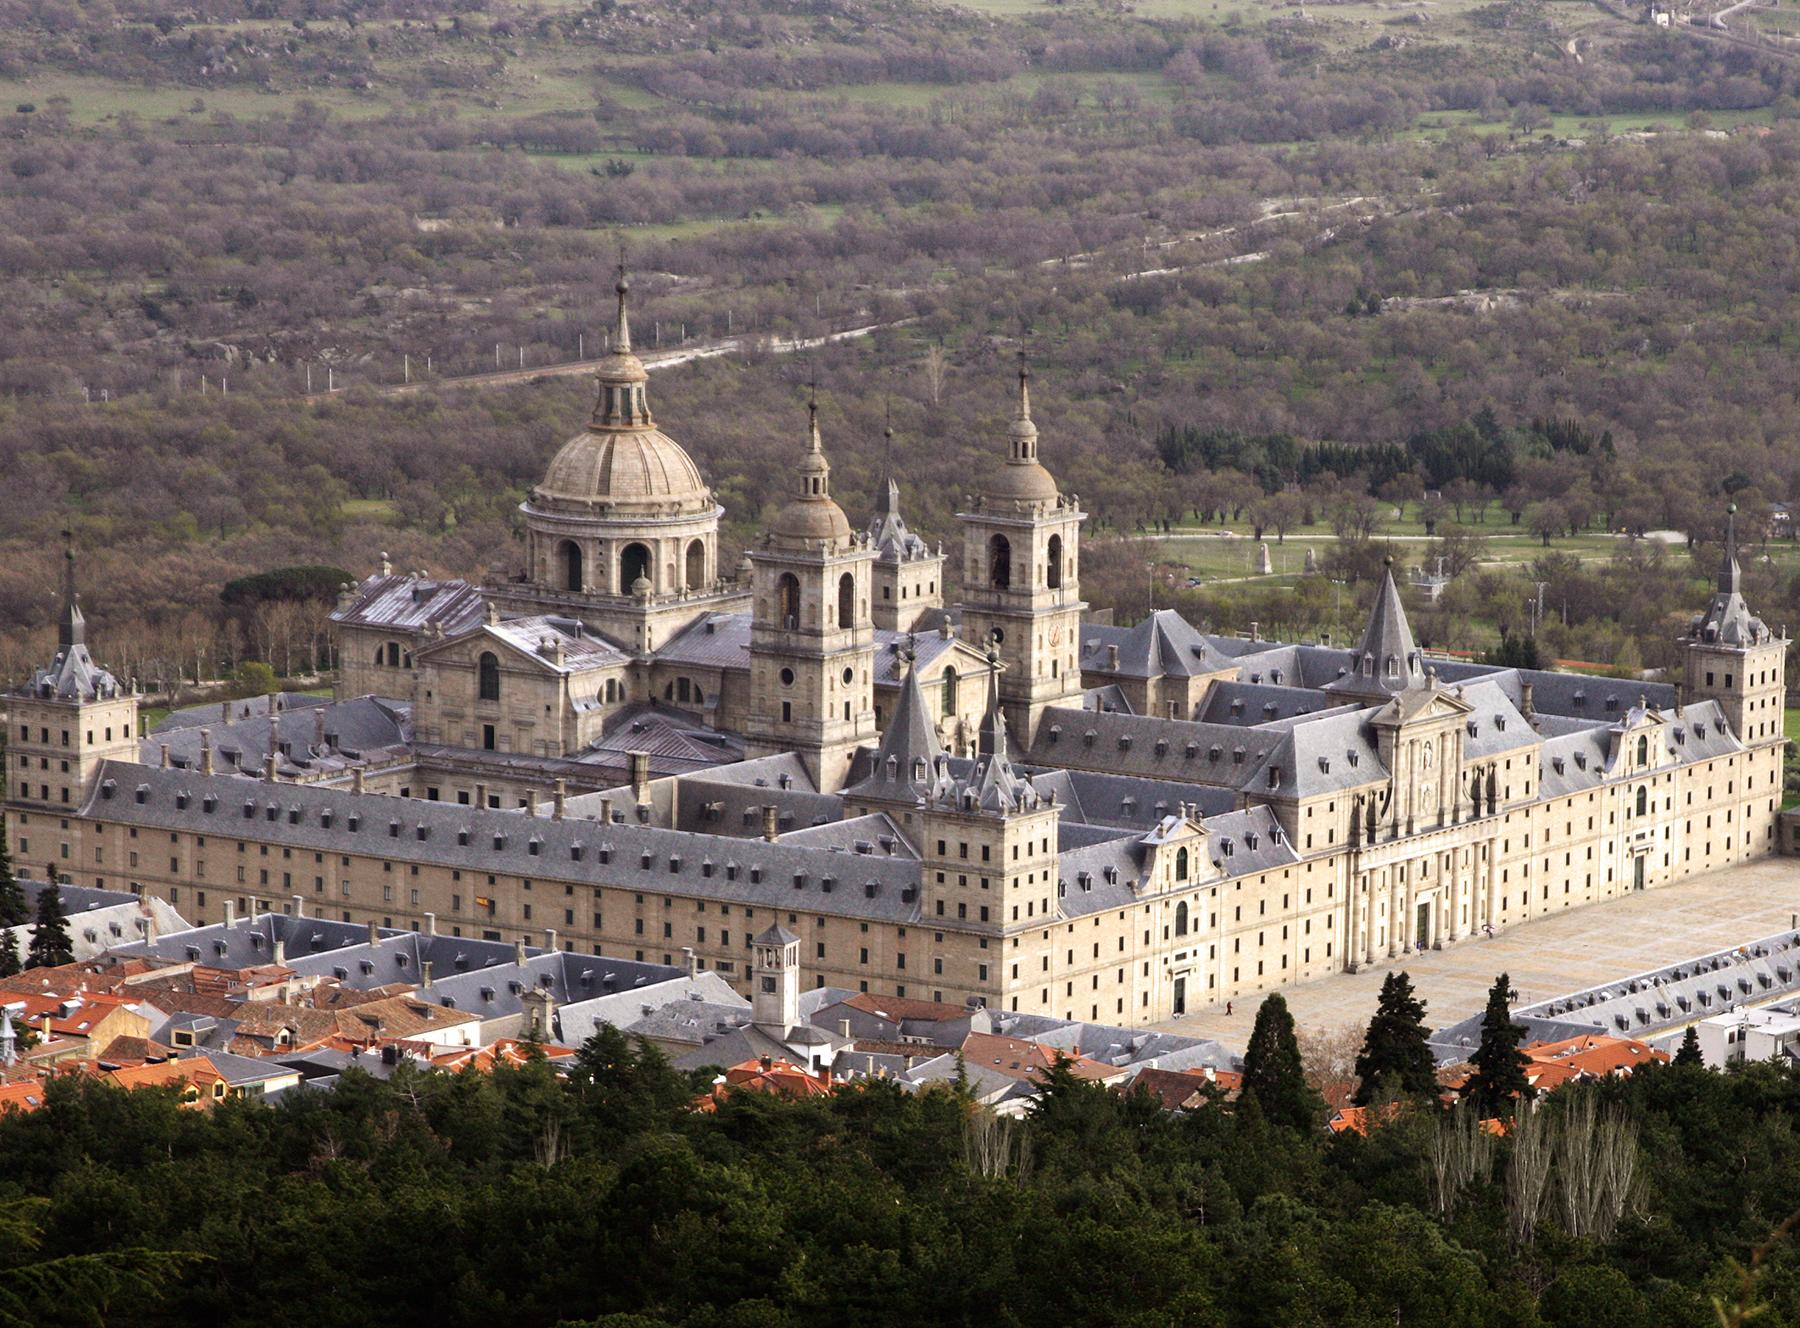 File:El escorial.jpg